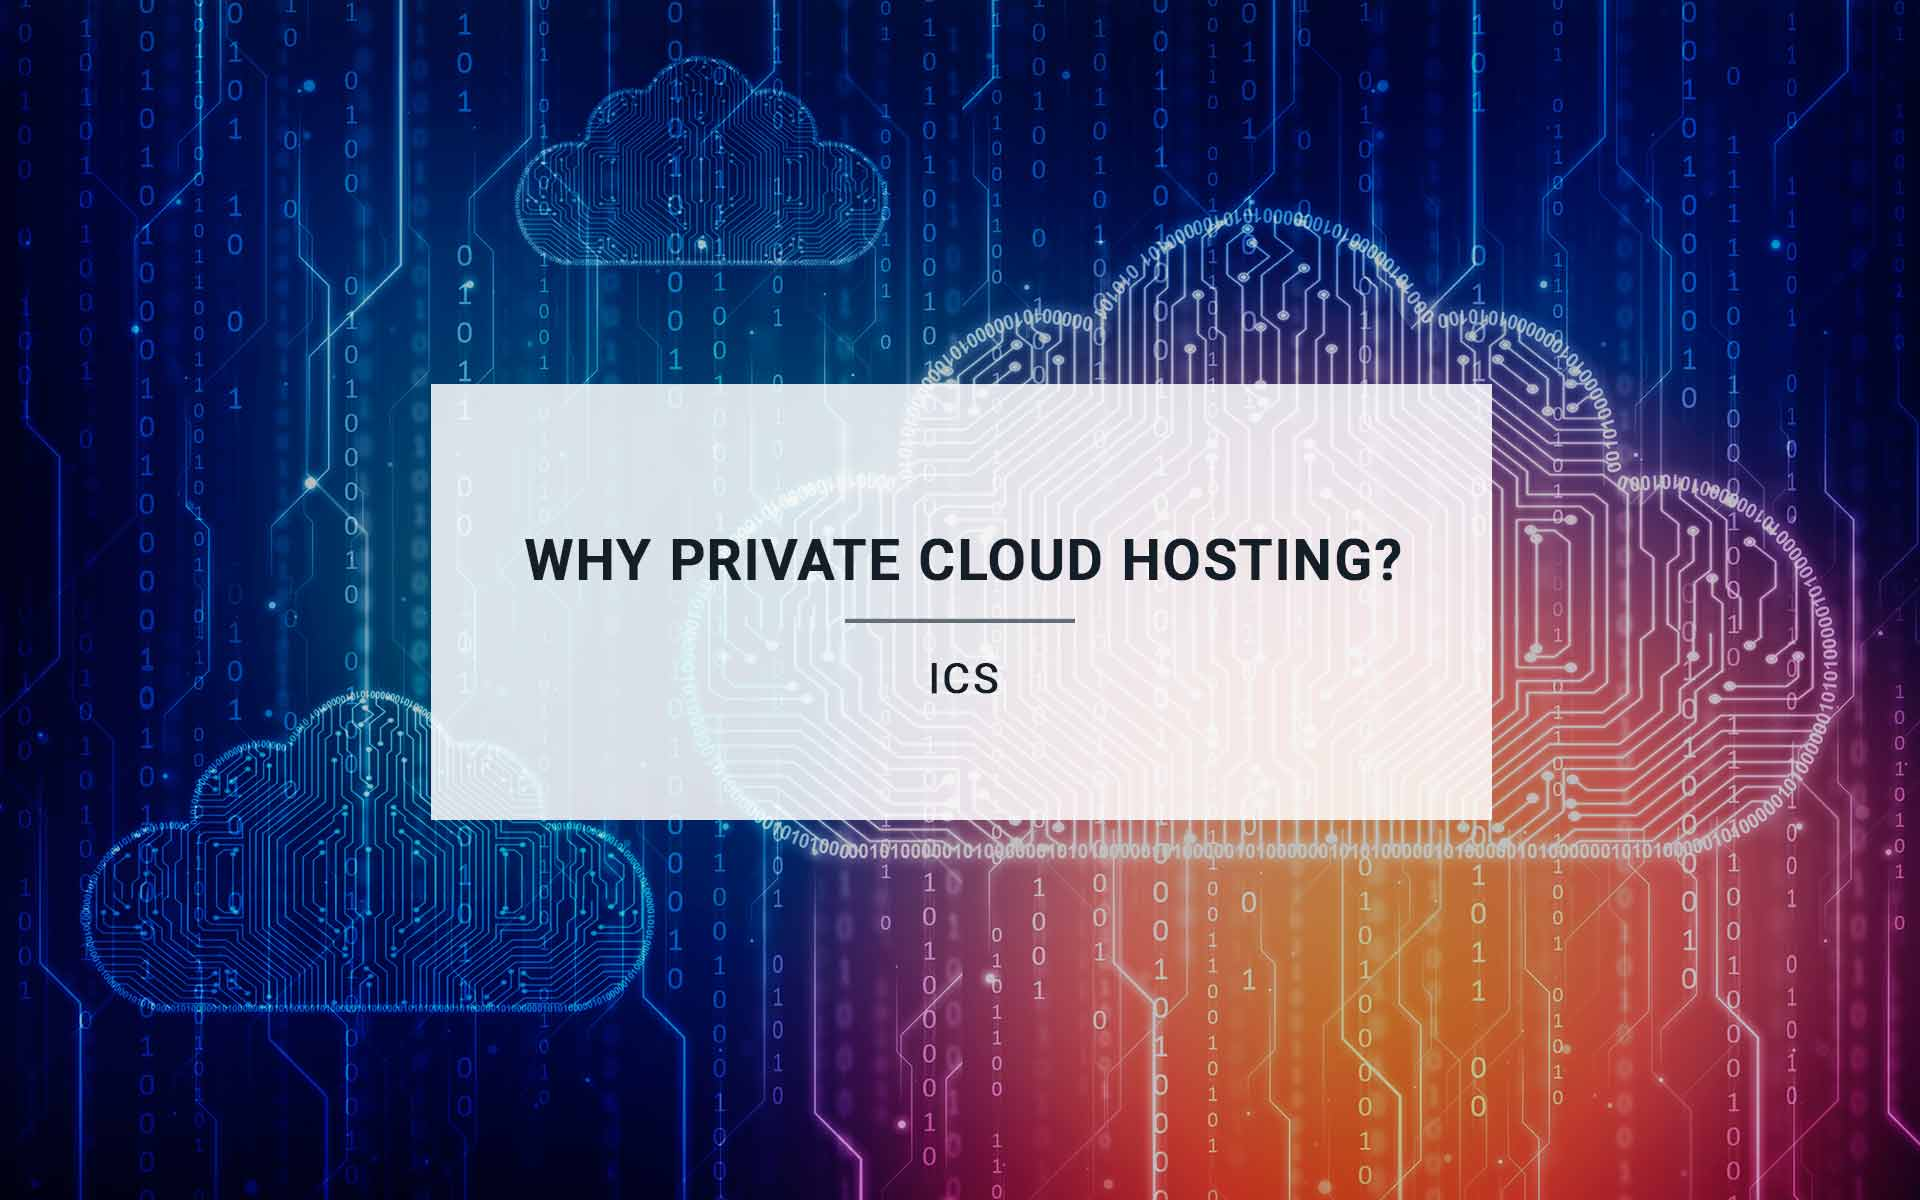 Why Private Cloud Hosting?